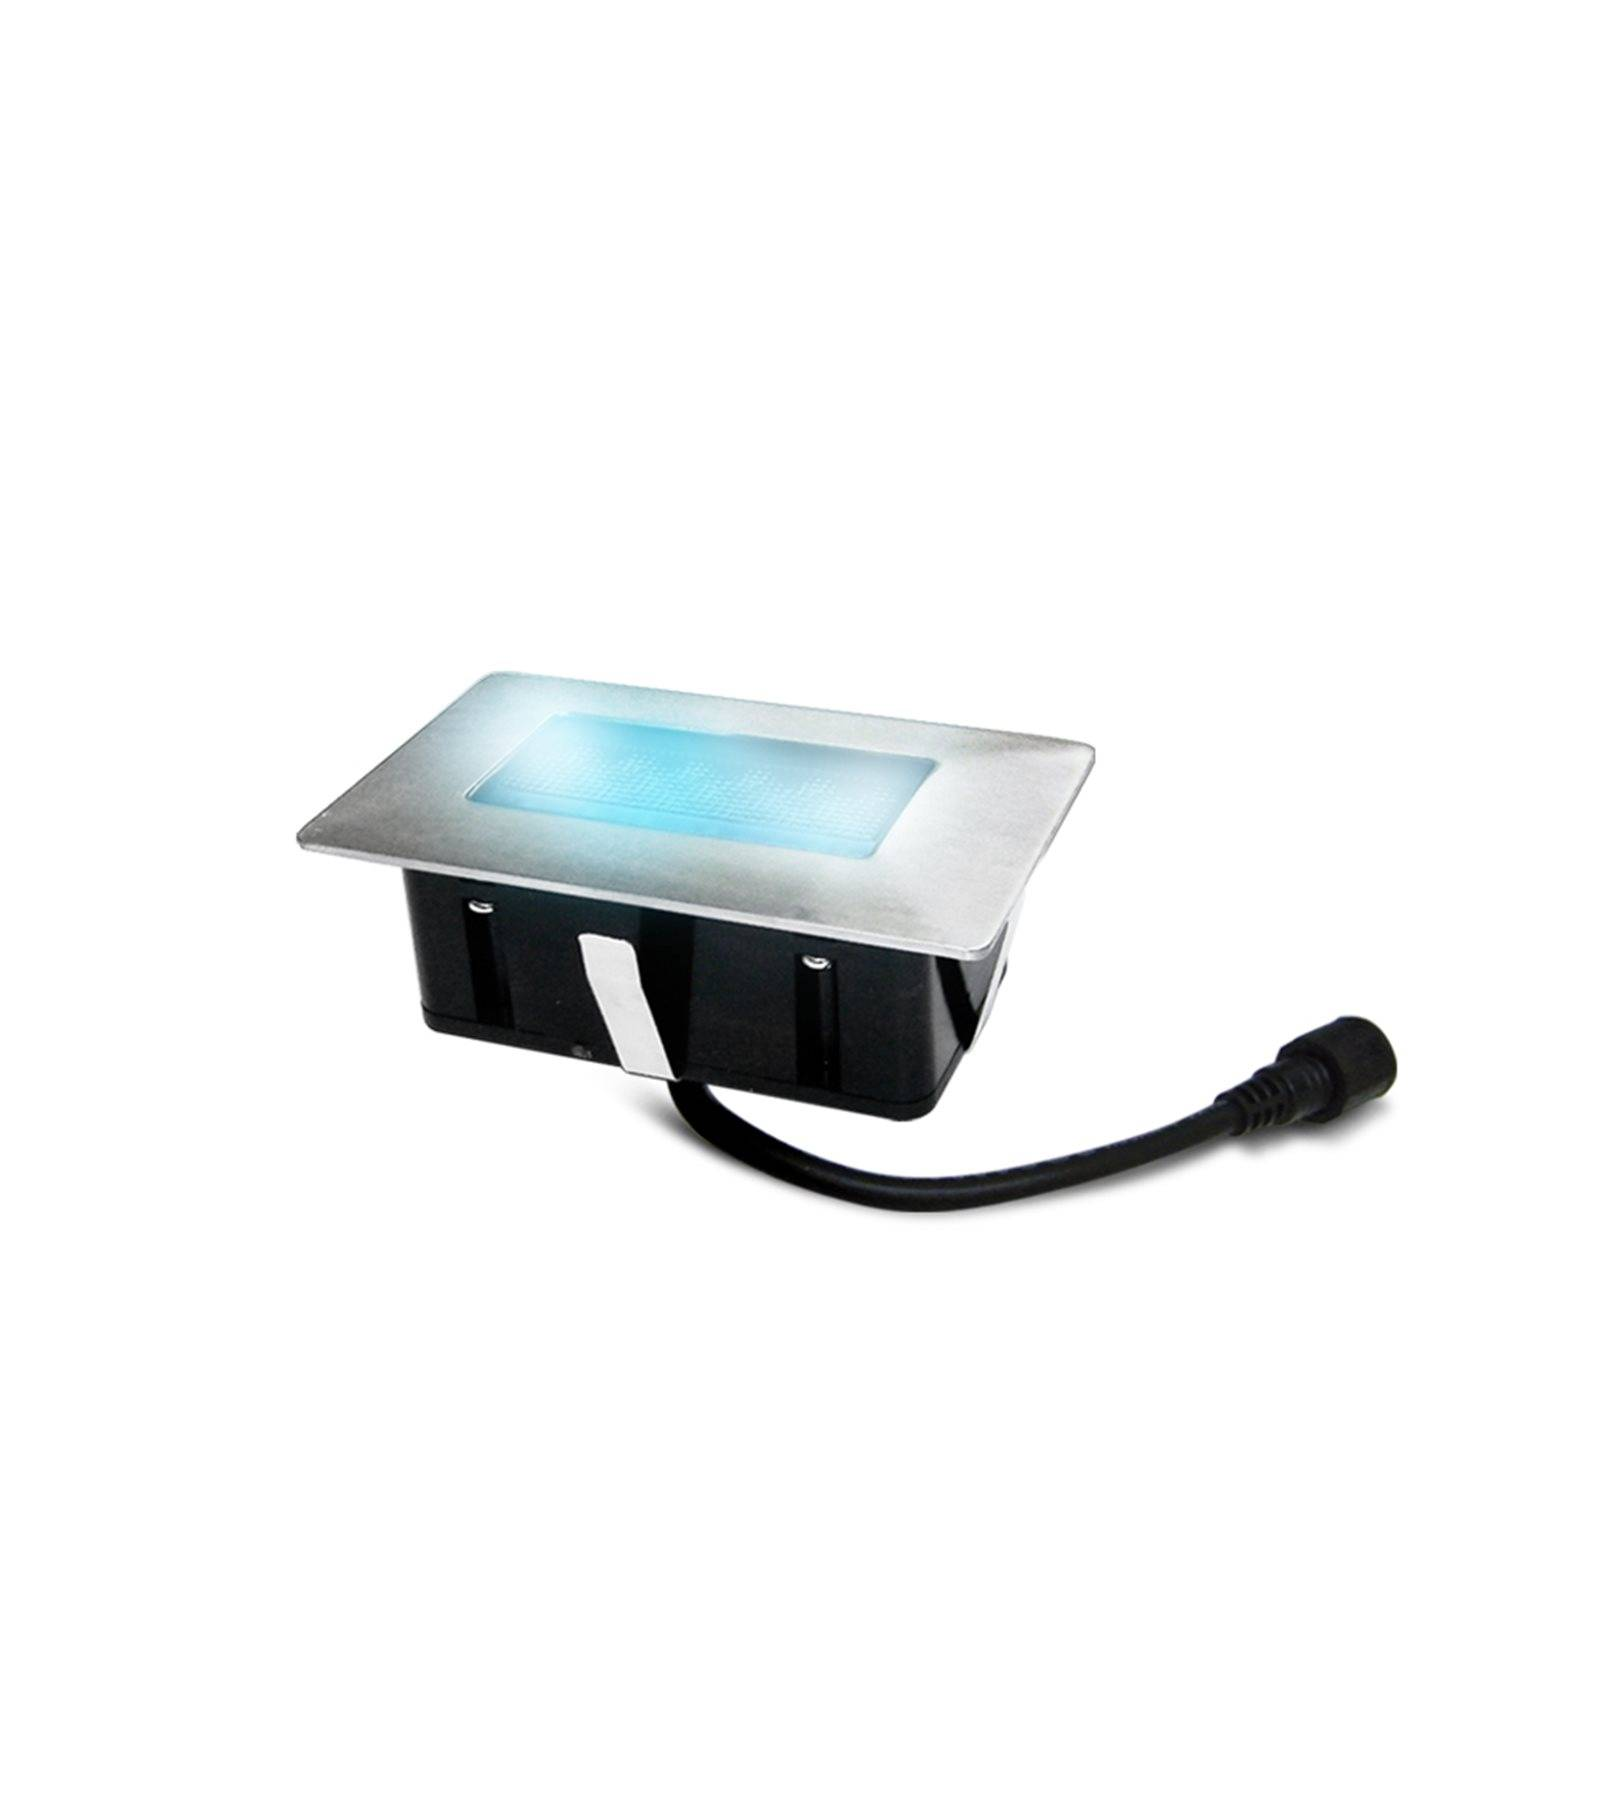 Spot Led Exterieur Encastrable Etanche Spot Led Encastrable Exterieur Rectangulaire Oveetech